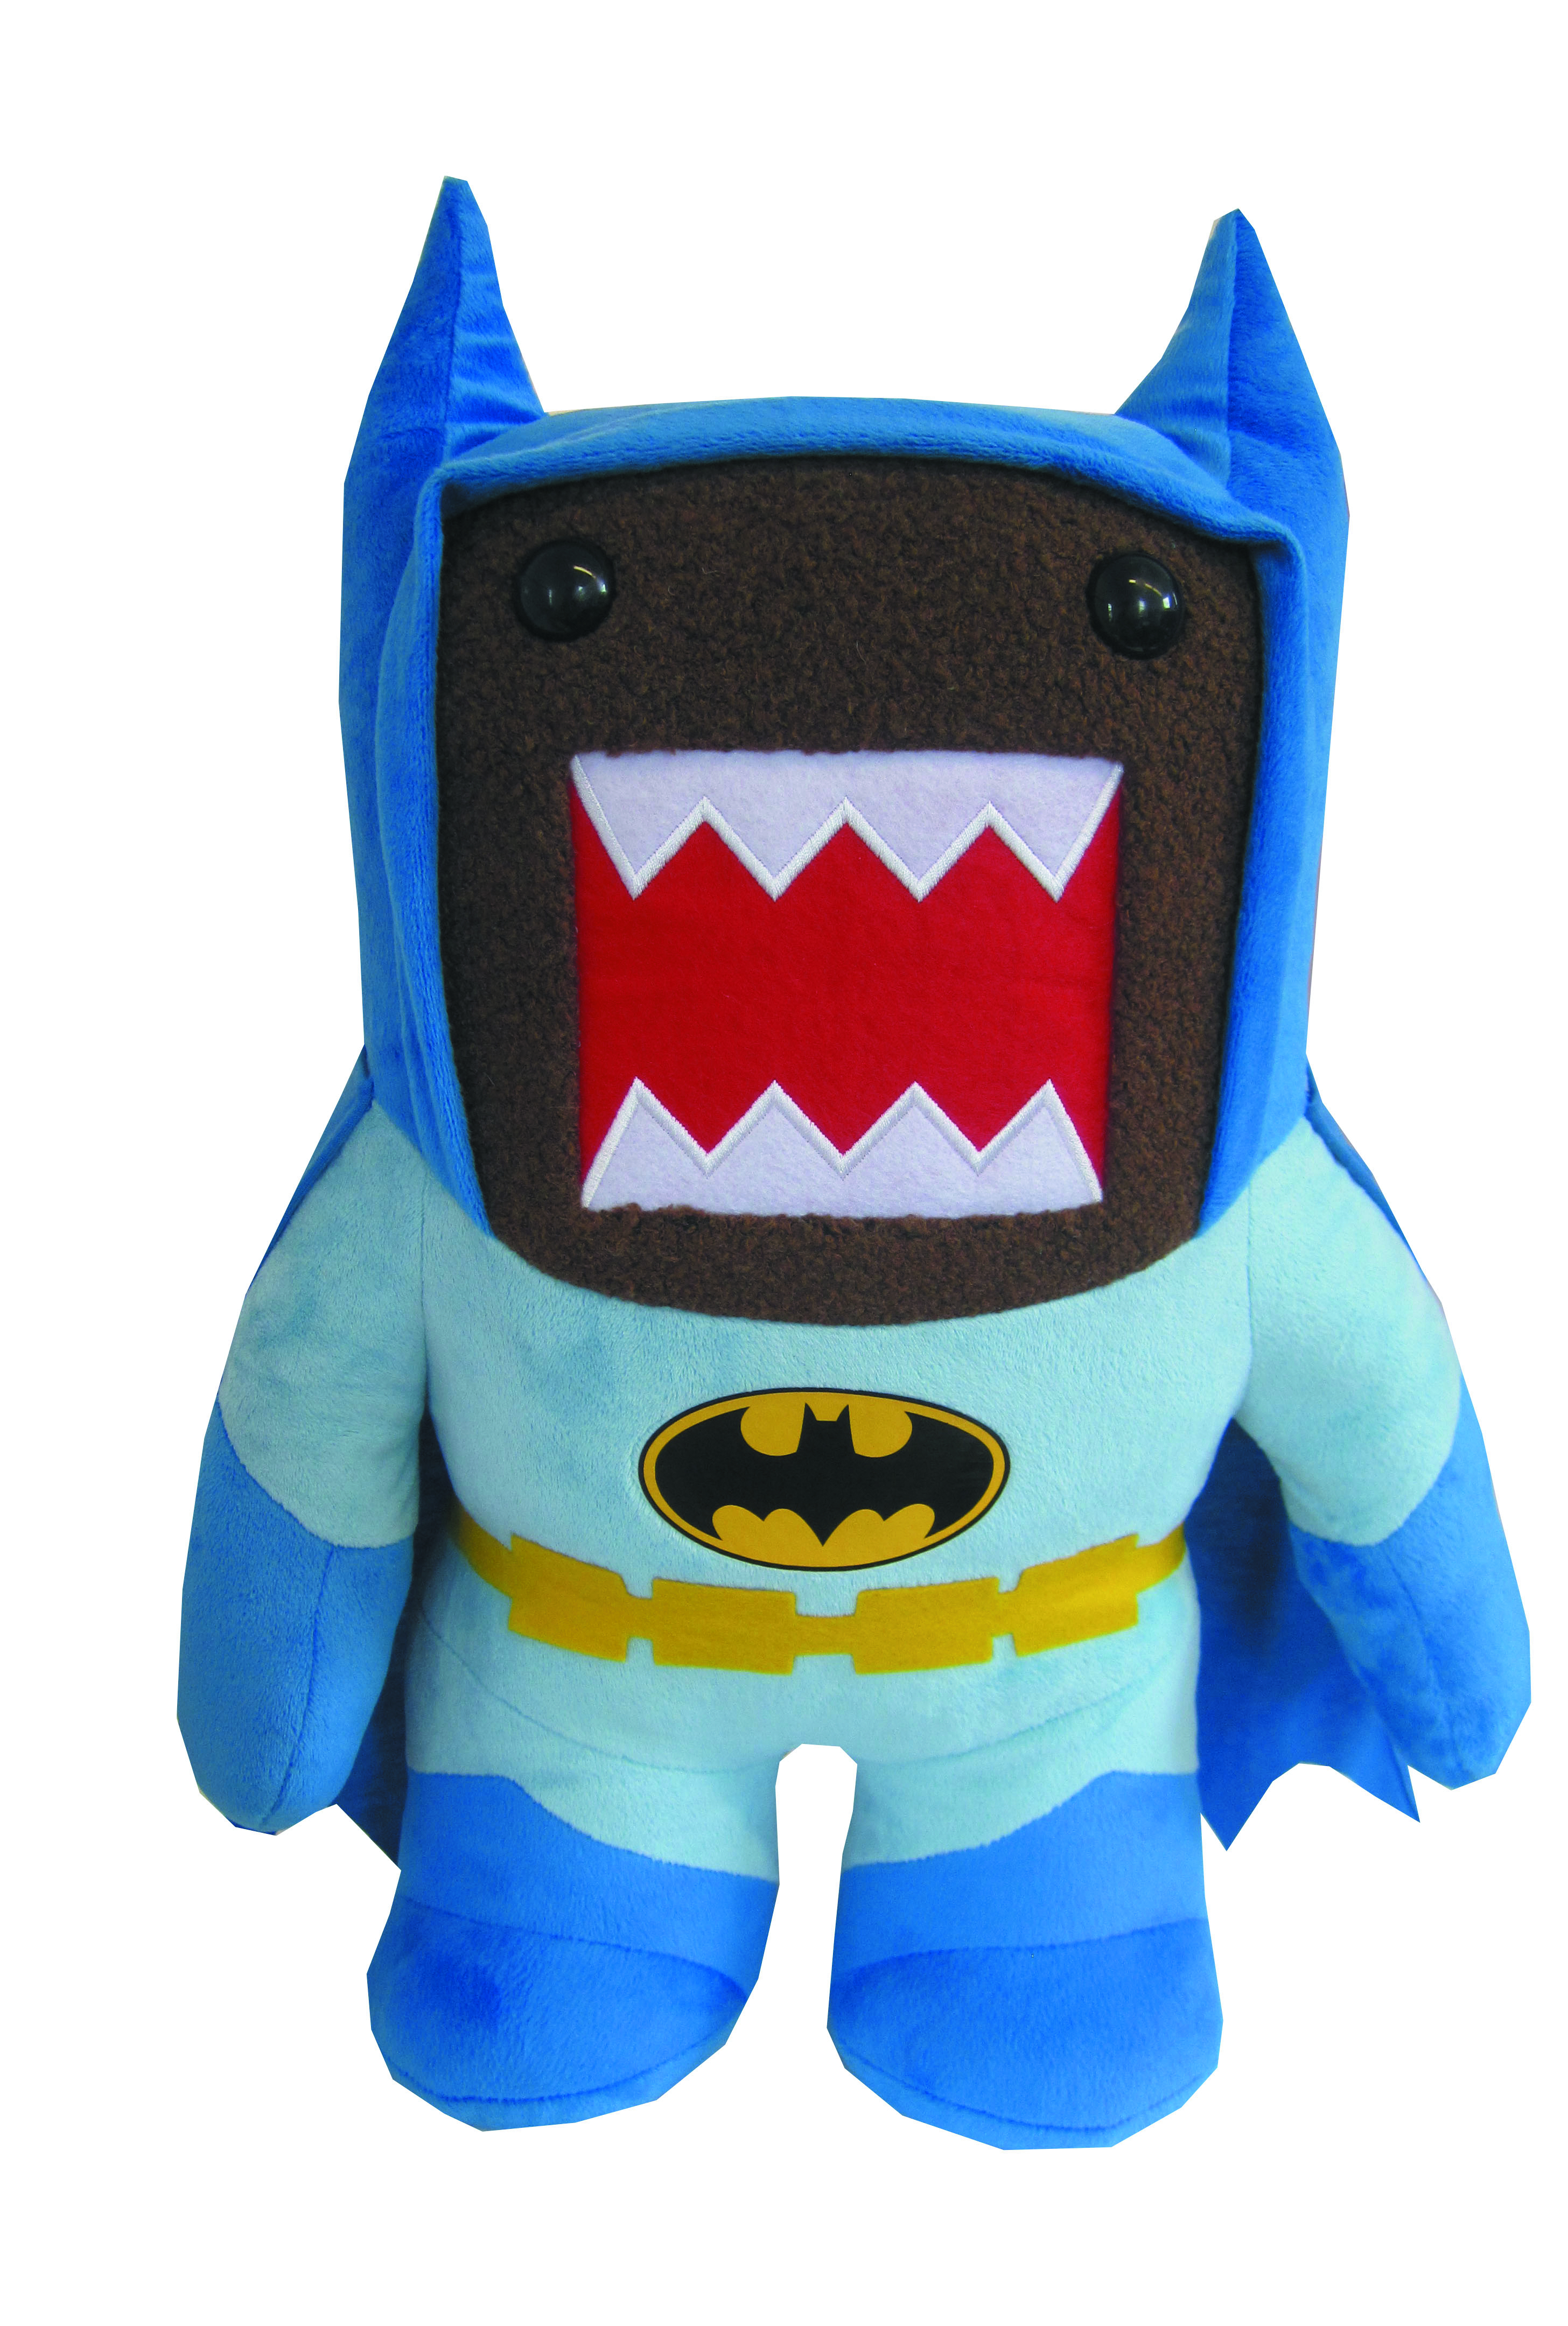 DOMO BATMAN BLUE 16.5IN PLUSH